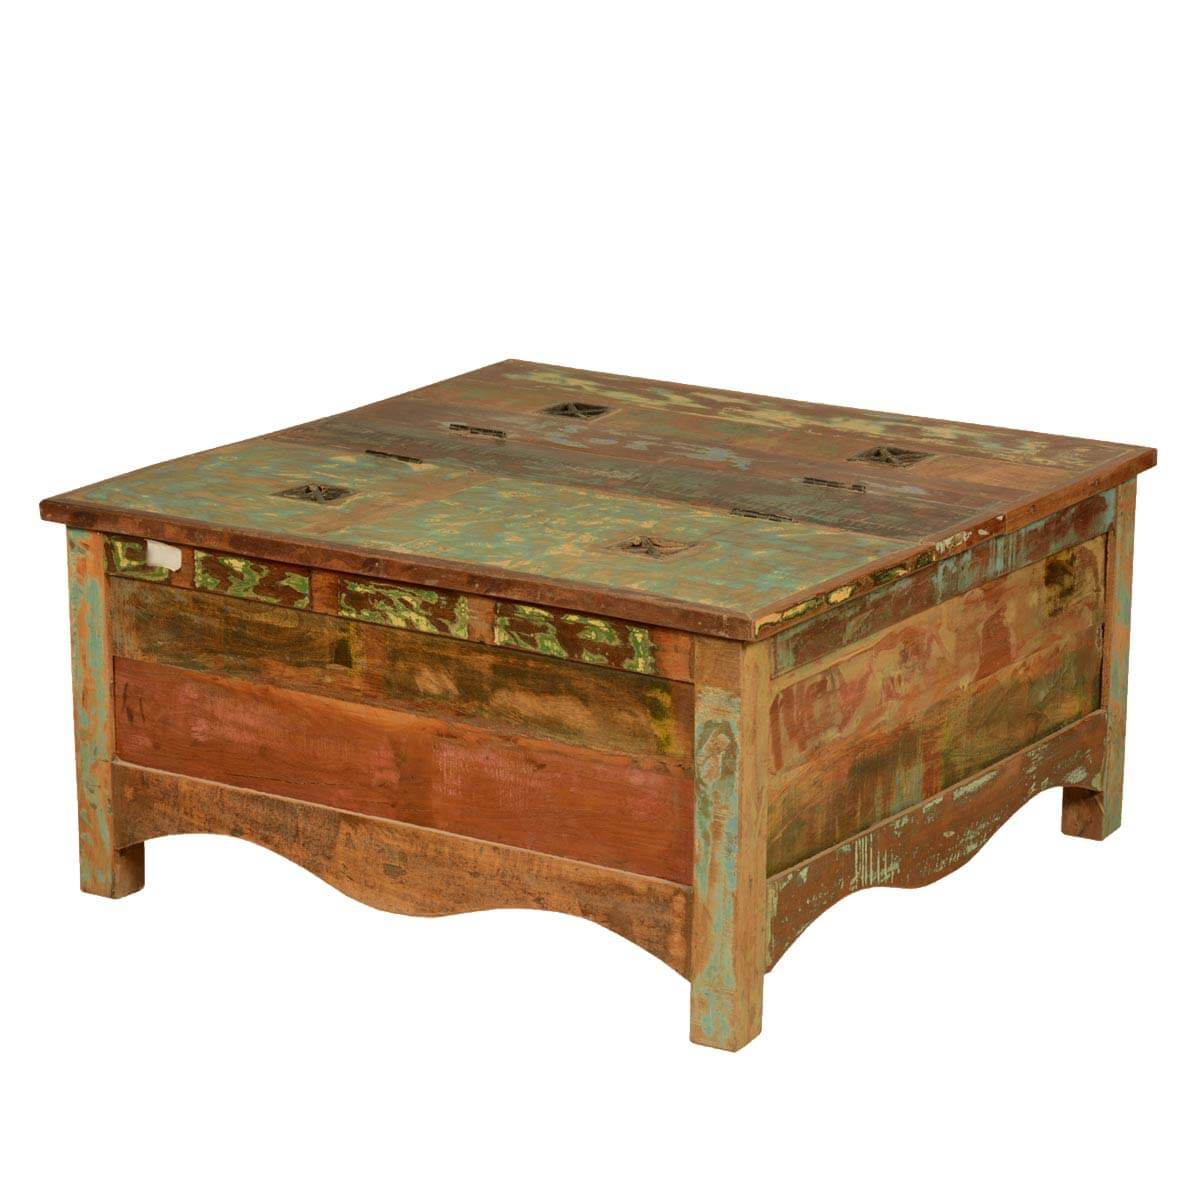 Rustic Reclaimed Wood 35 5 Square Double Top Coffee Table